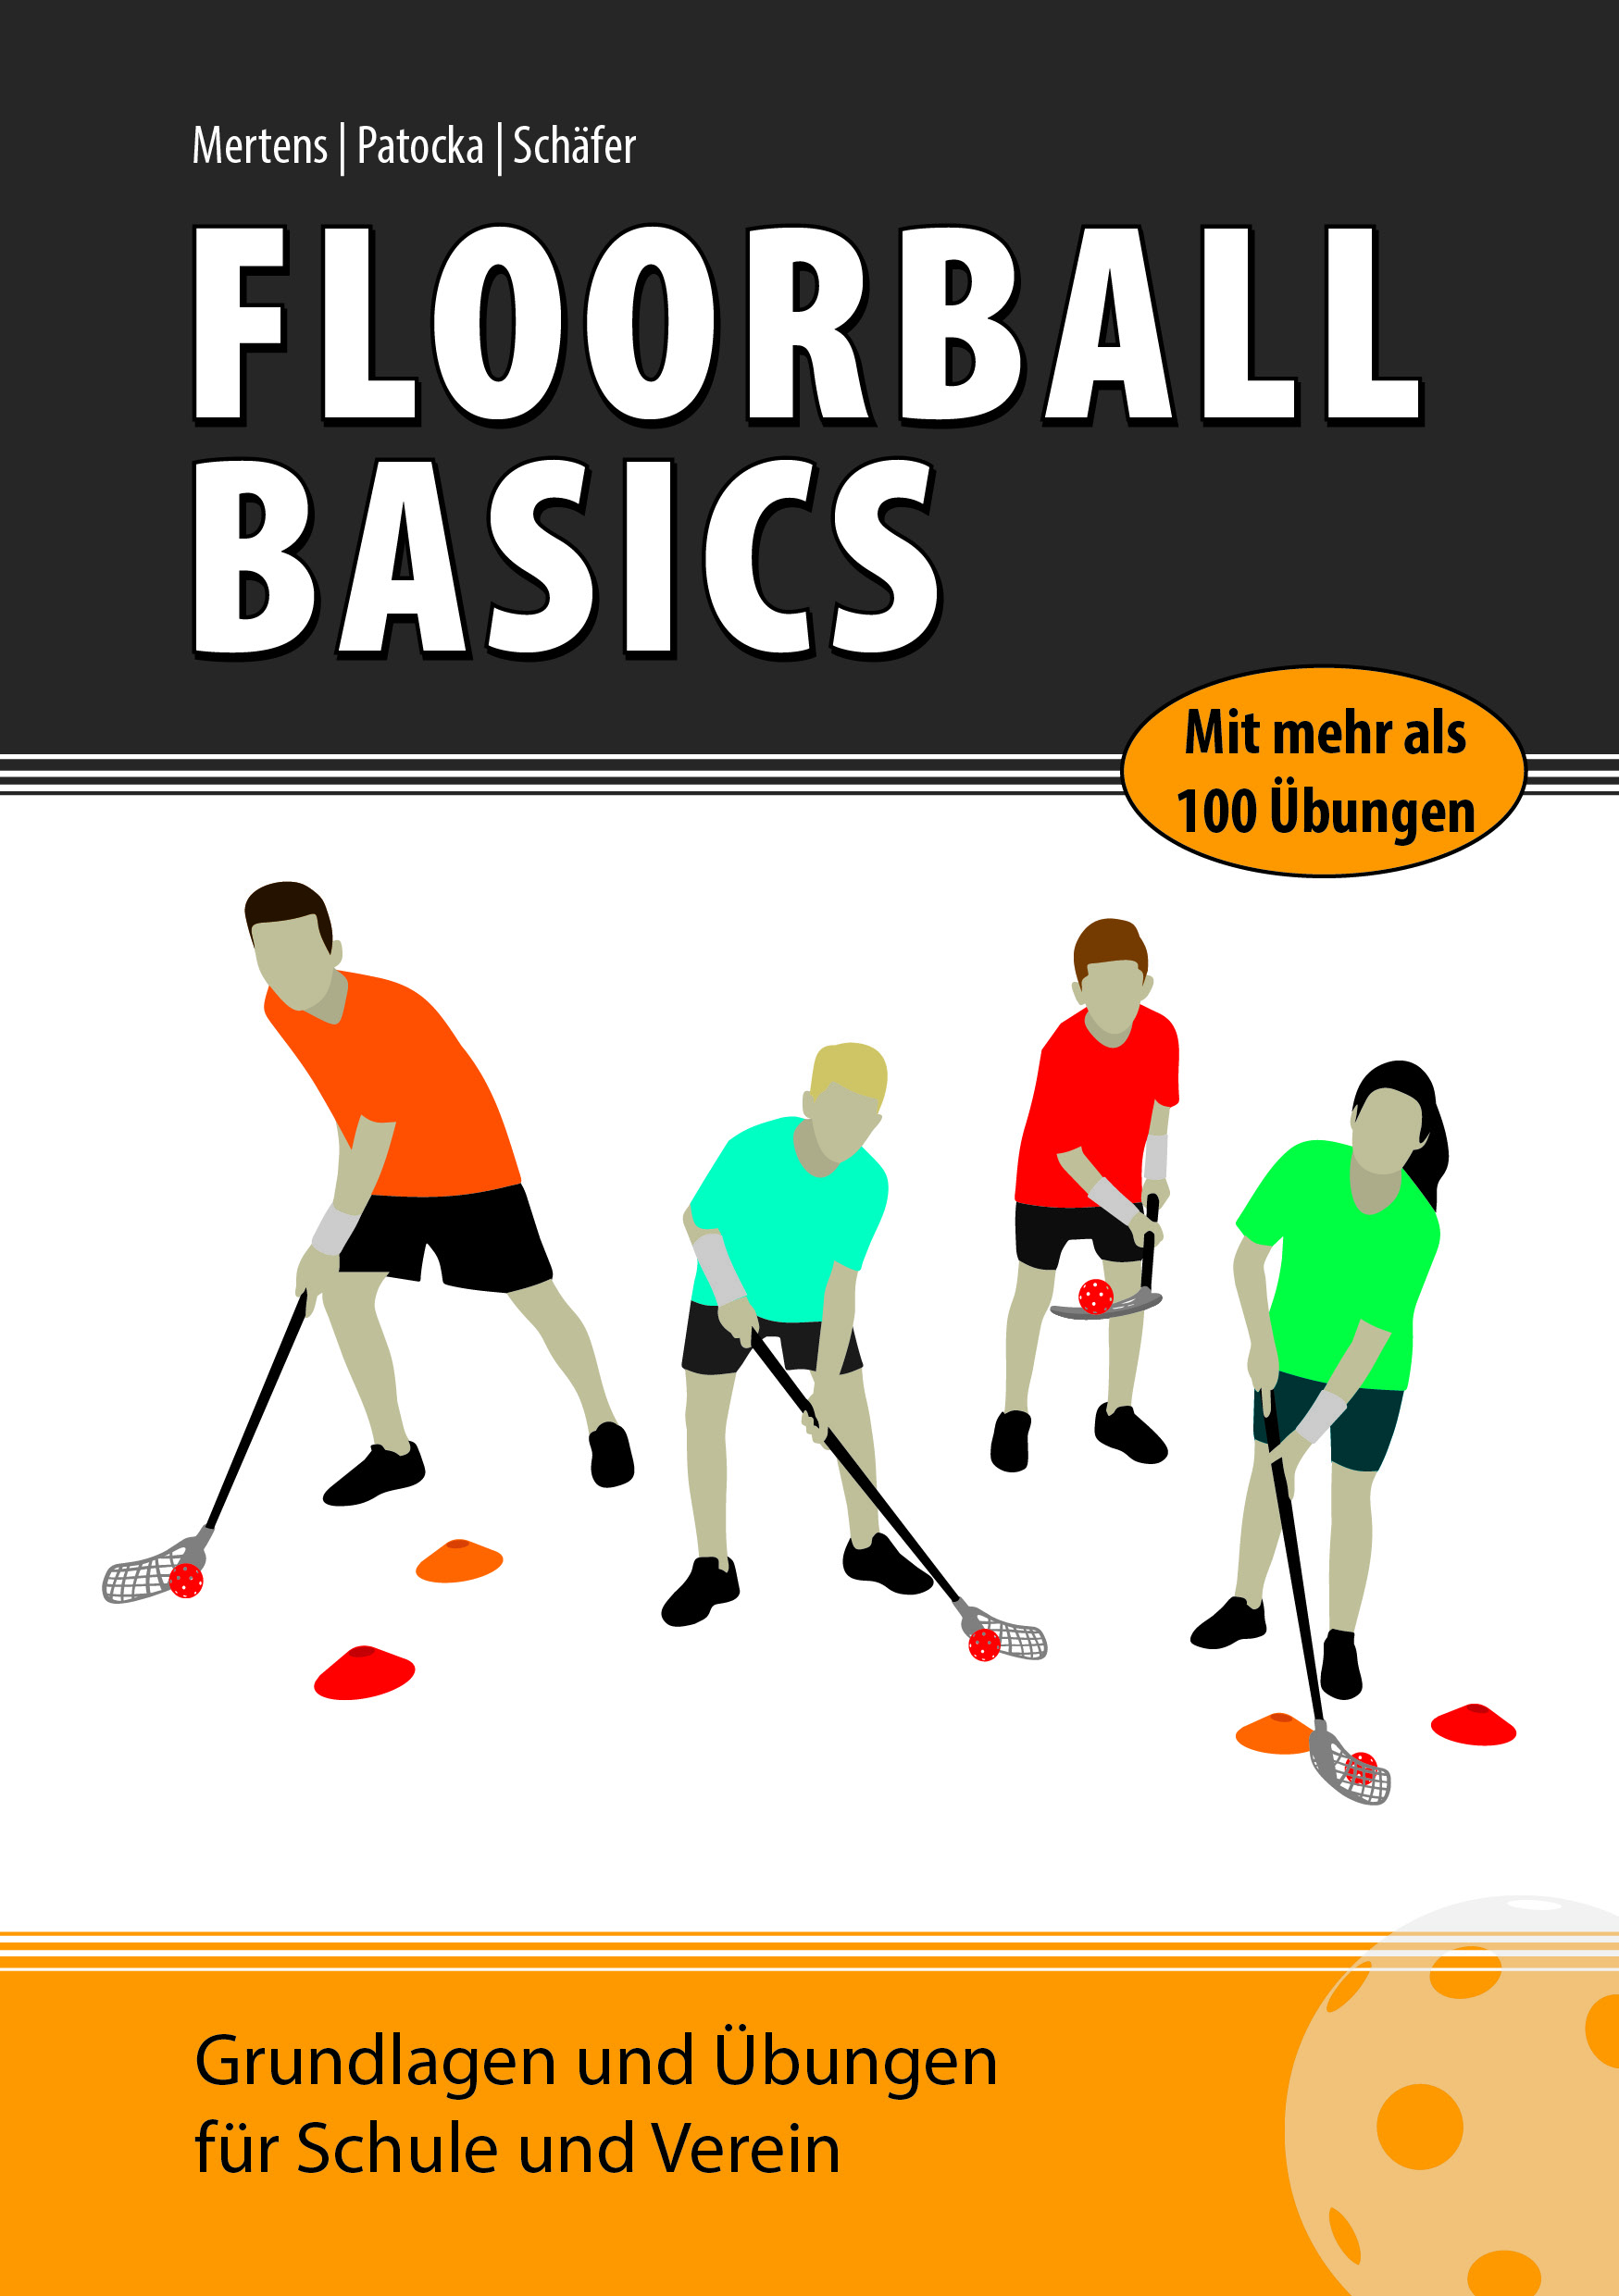 floorball basics titel